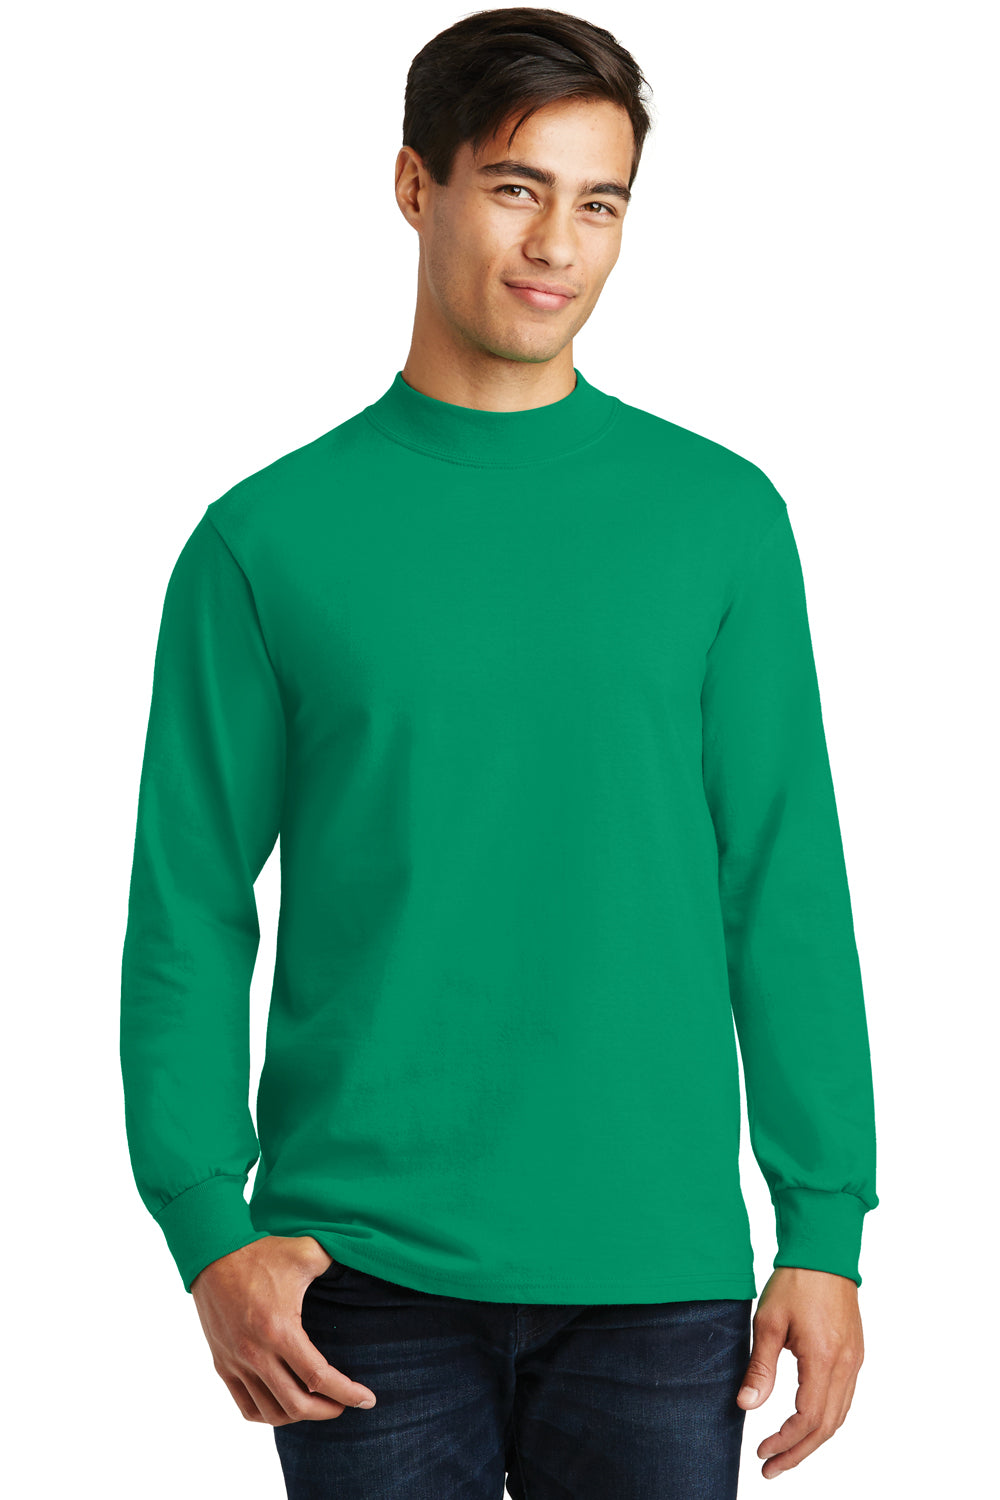 Port & Company PC61M Mens Essential Long Sleeve Mock Neck T-Shirt Kelly Green Front